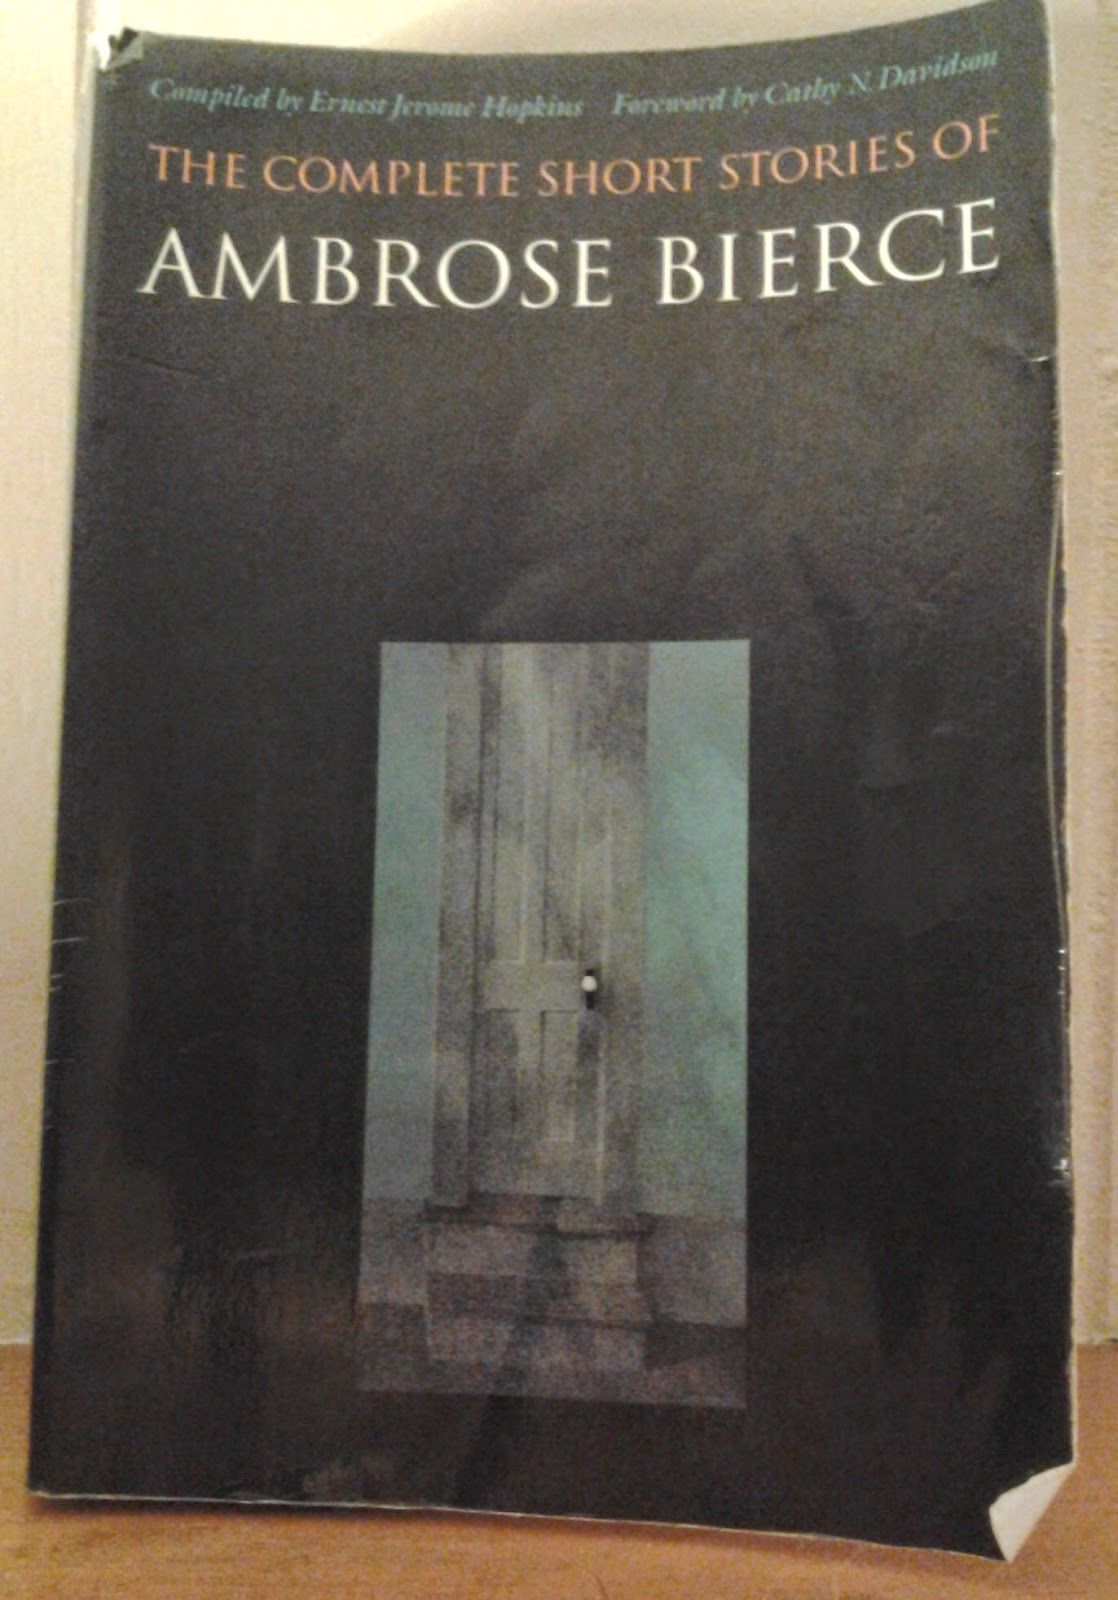 Book cover: Complete Short Stories of Ambrose Bierce